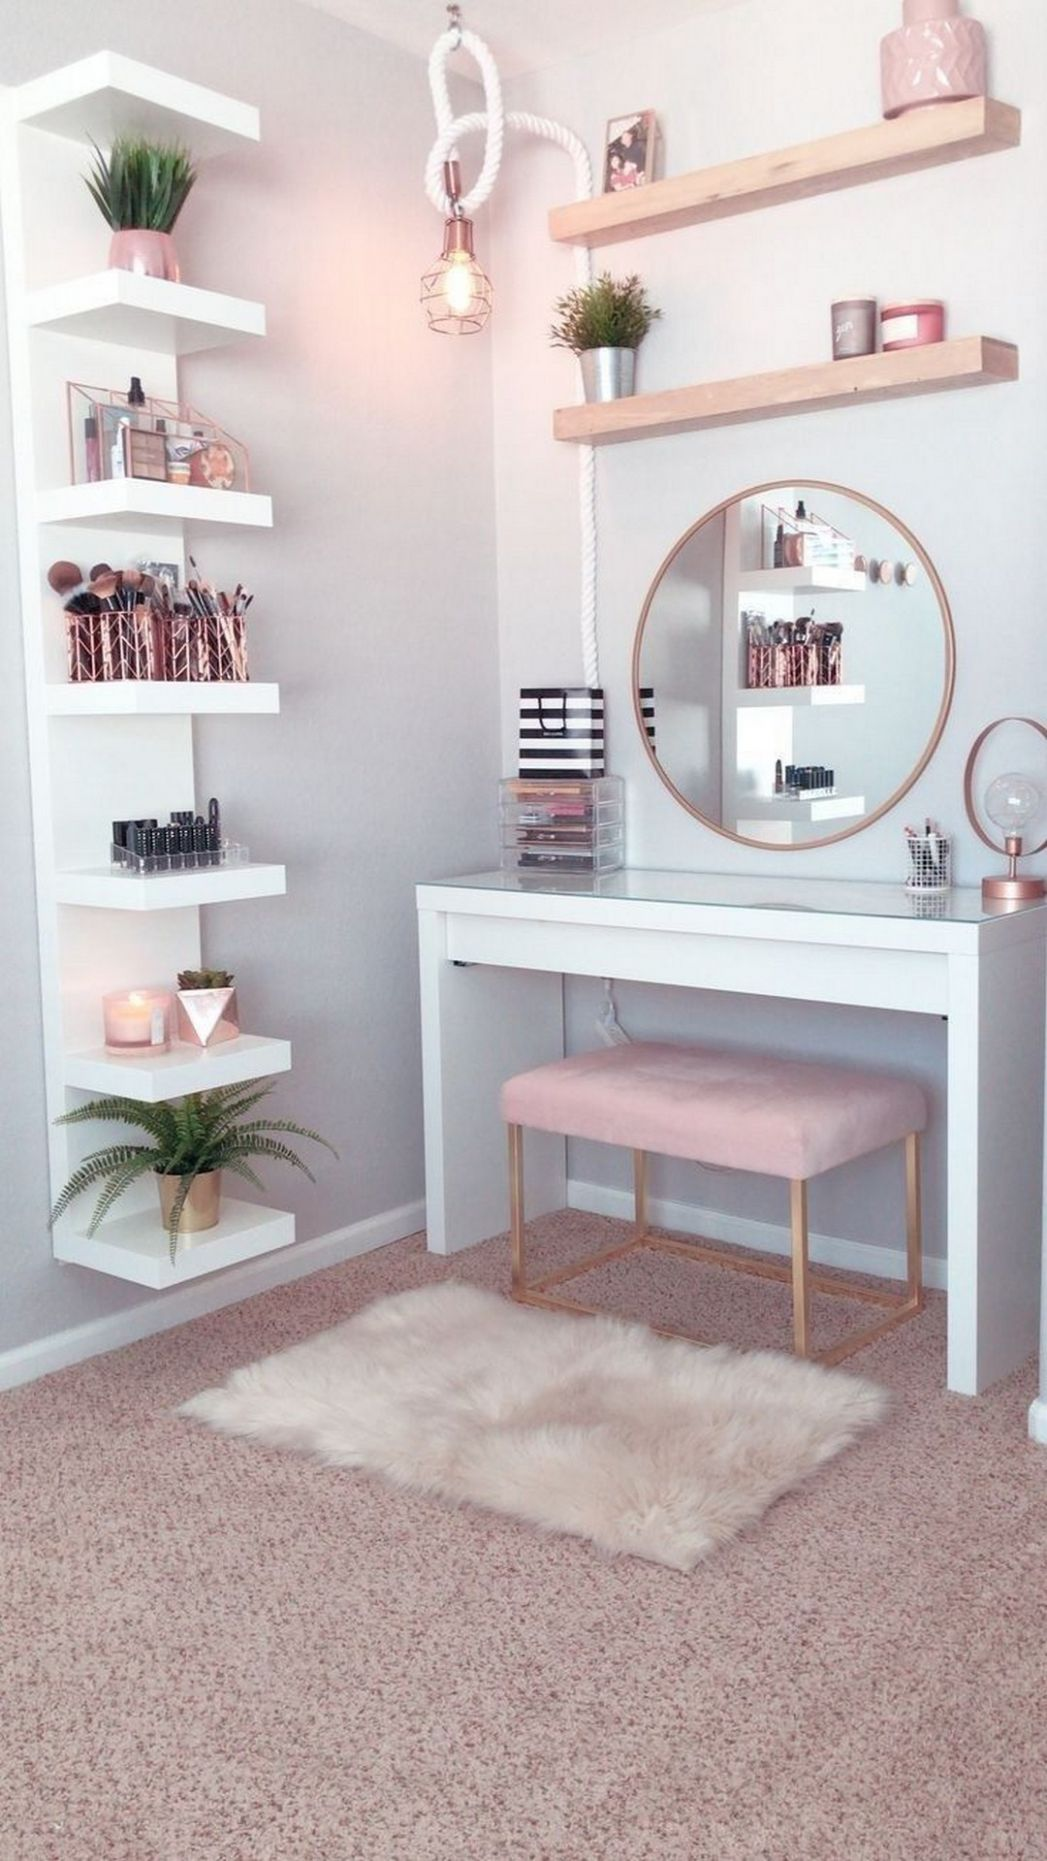 12 Makeup Room Ideas To Brighten Your Morning Routine - House & Living - makeup room painting